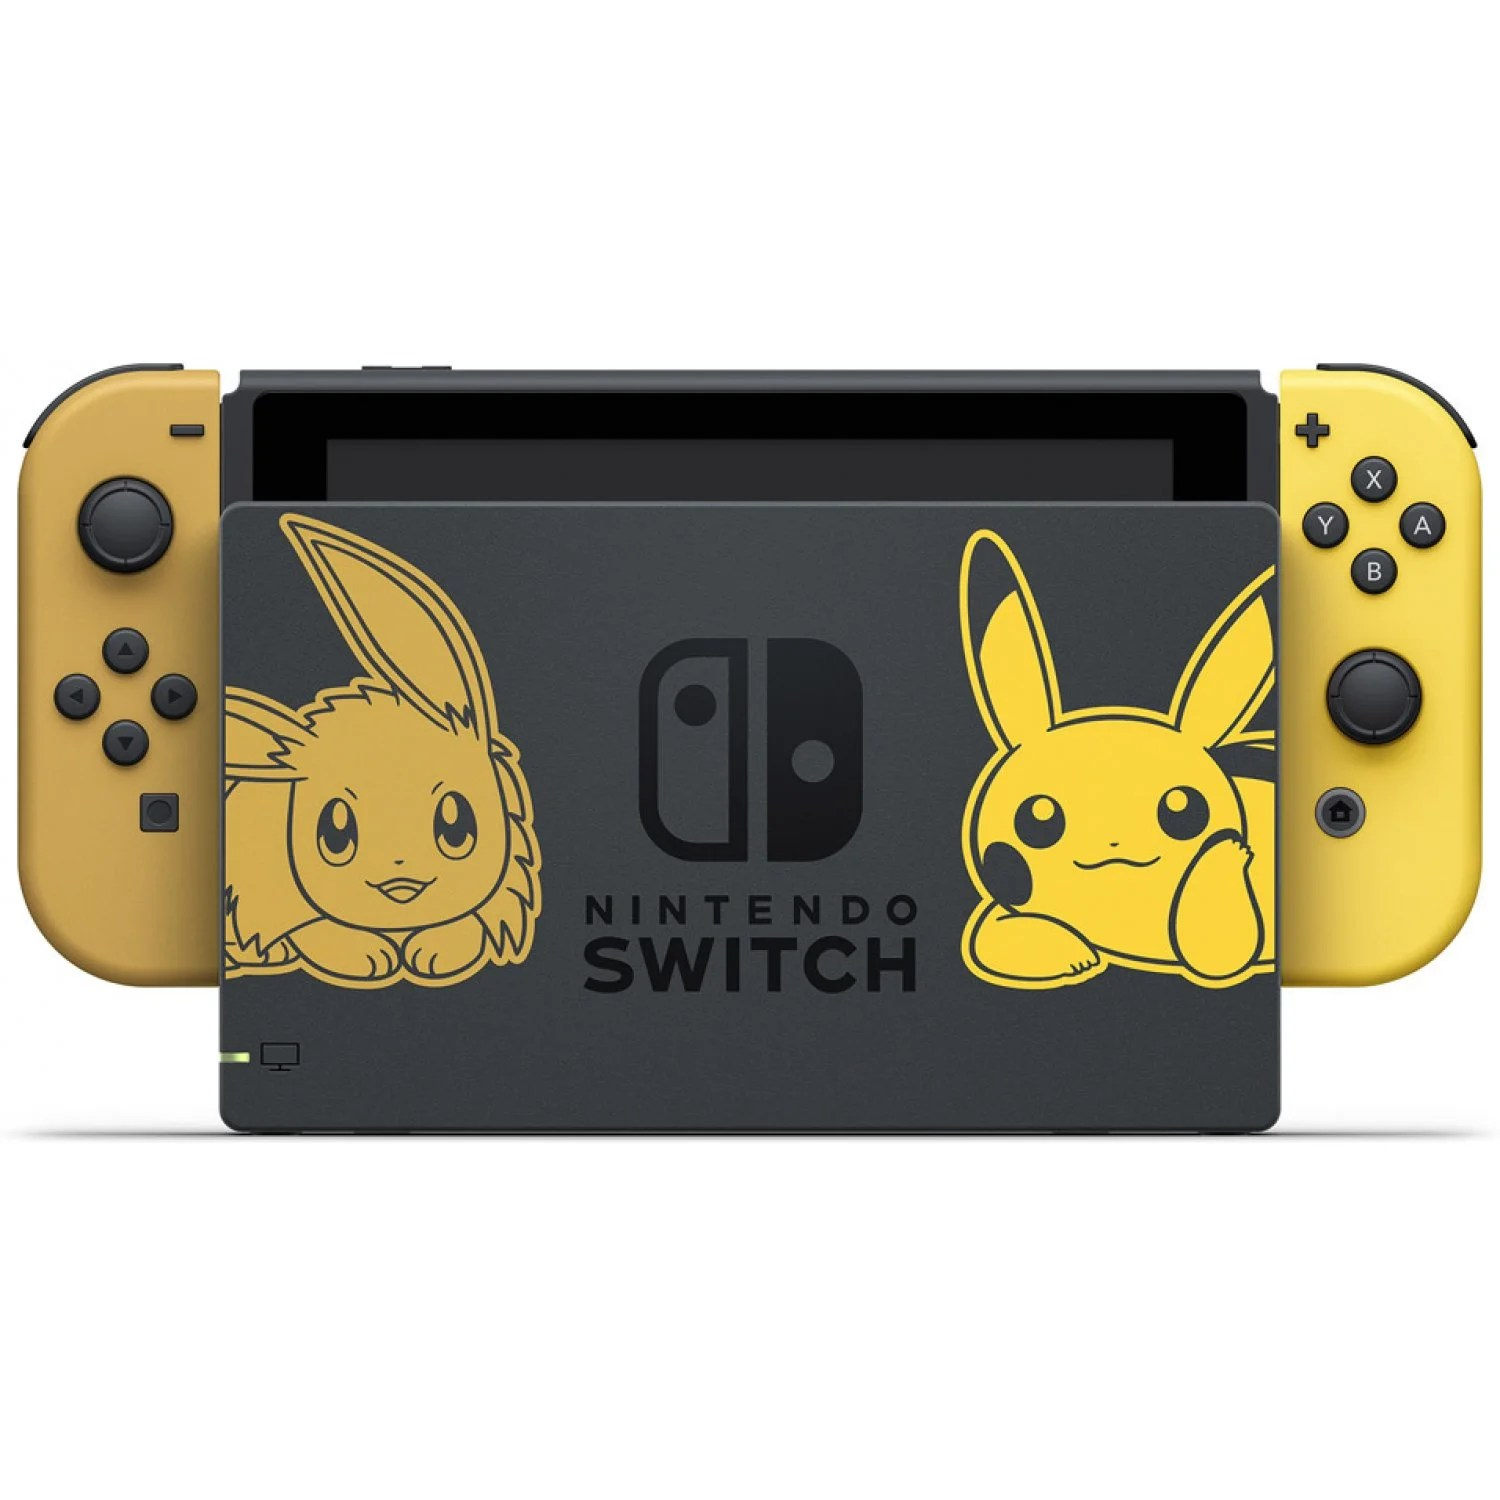 Nintendo Switch Pikachu Amp Eevee Edition With Pokmon Let